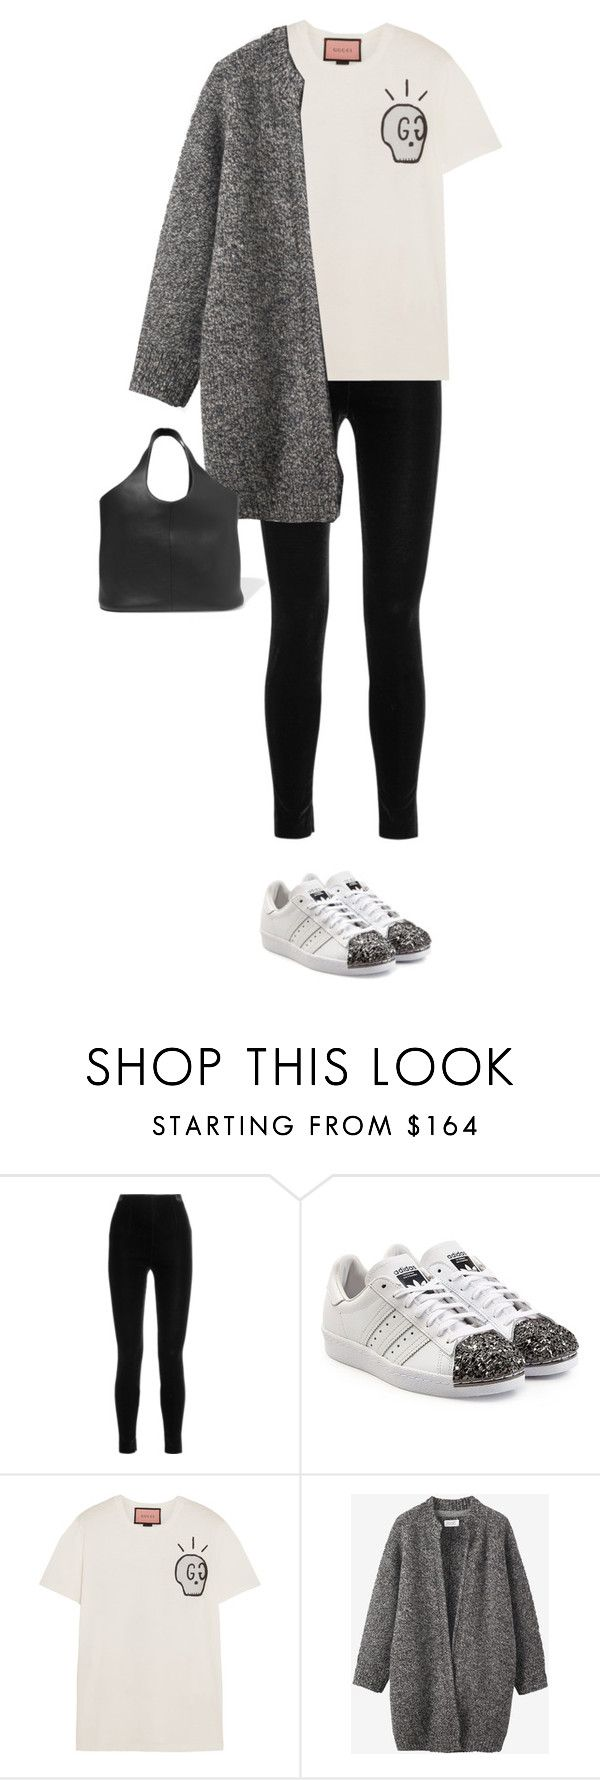 """""""4.958"""" by katrina-yeow ❤ liked on Polyvore featuring Balmain, adidas Originals, Gucci, Toast and Tom Ford"""